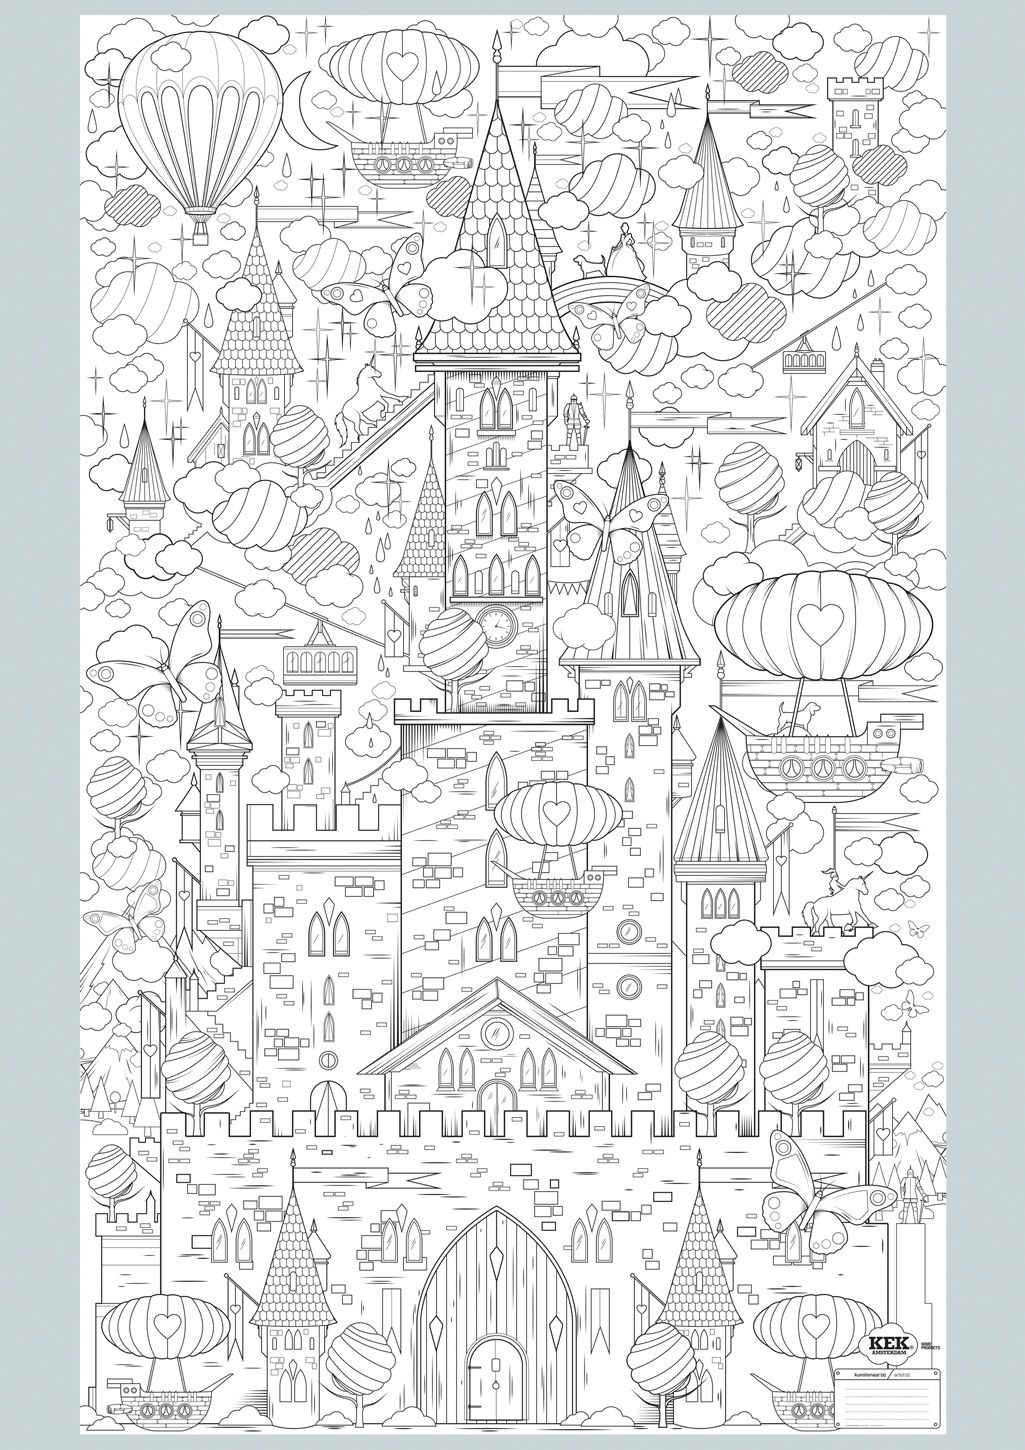 The coloring book project 2nd edition - King Of My Castle Fantasy Abstract Doodle Zentangle Paisley Coloring Pages Colouring Adult Detailed Advanced